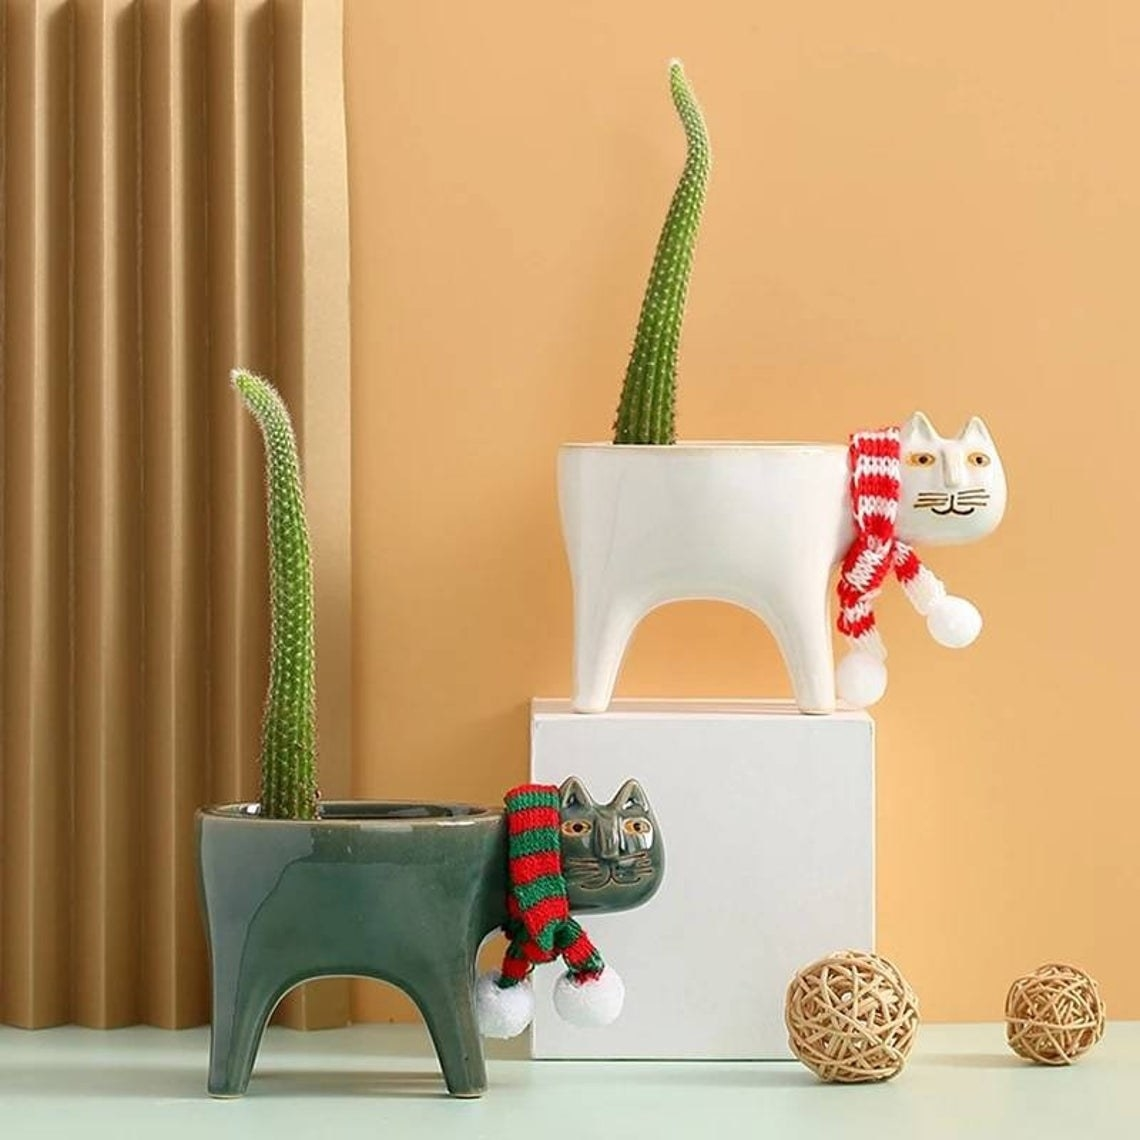 Ceramic cat planter with cactus for tail